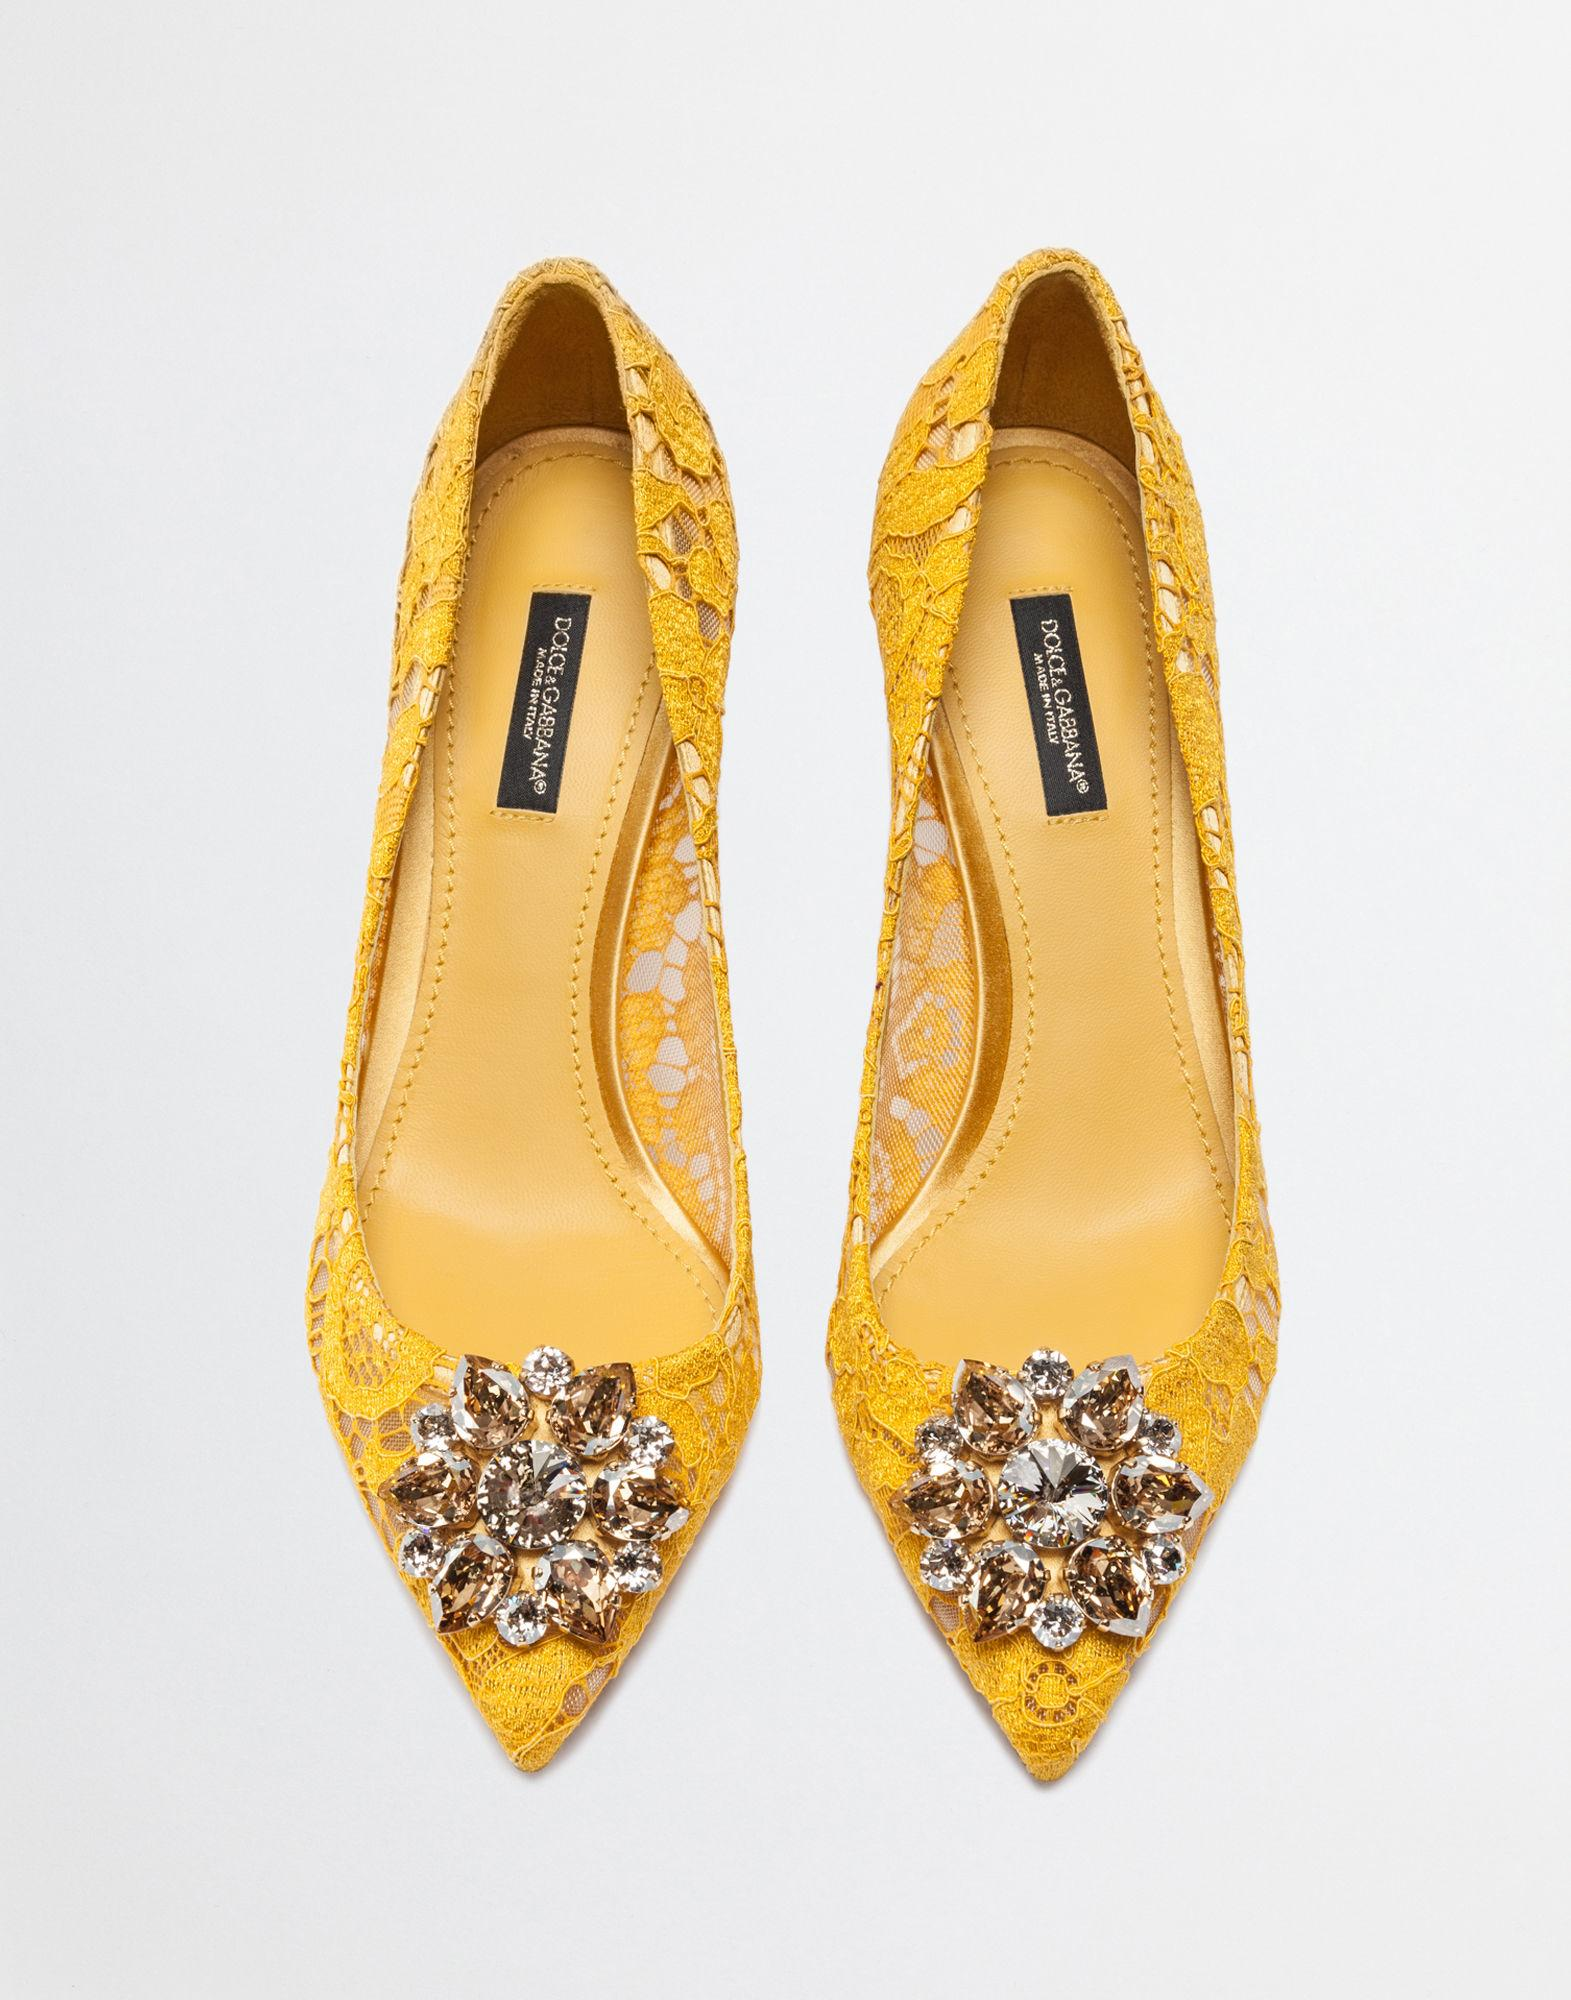 1288f949fe Dolce & Gabbana Belluci Crystal-Embellished Lace Pumps In Yellow ...